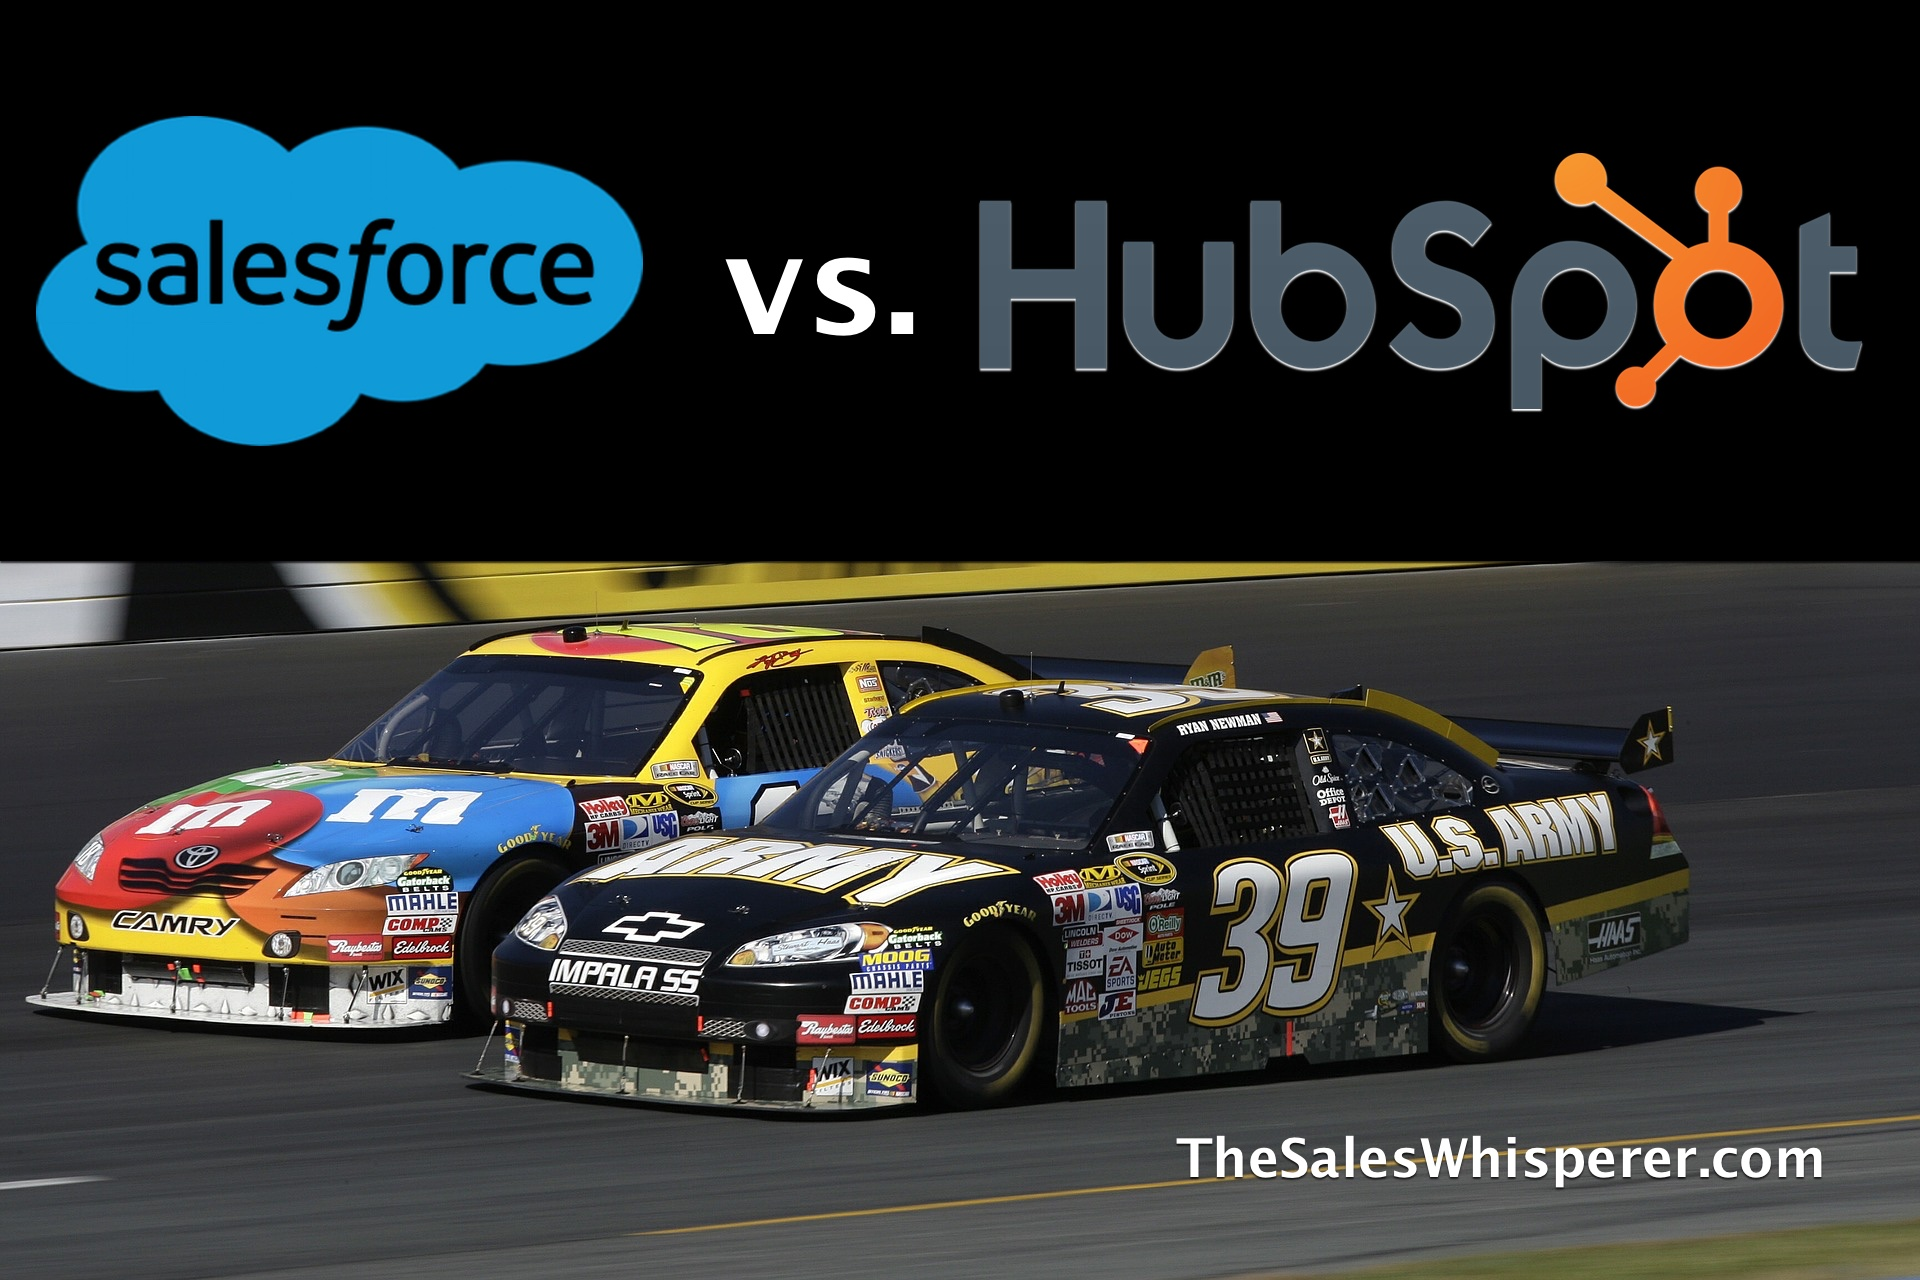 Salesforce vs HubSpot for the best CRM by HubSpot Gold partner Wes Schaeffer, The Sales Whisperer®